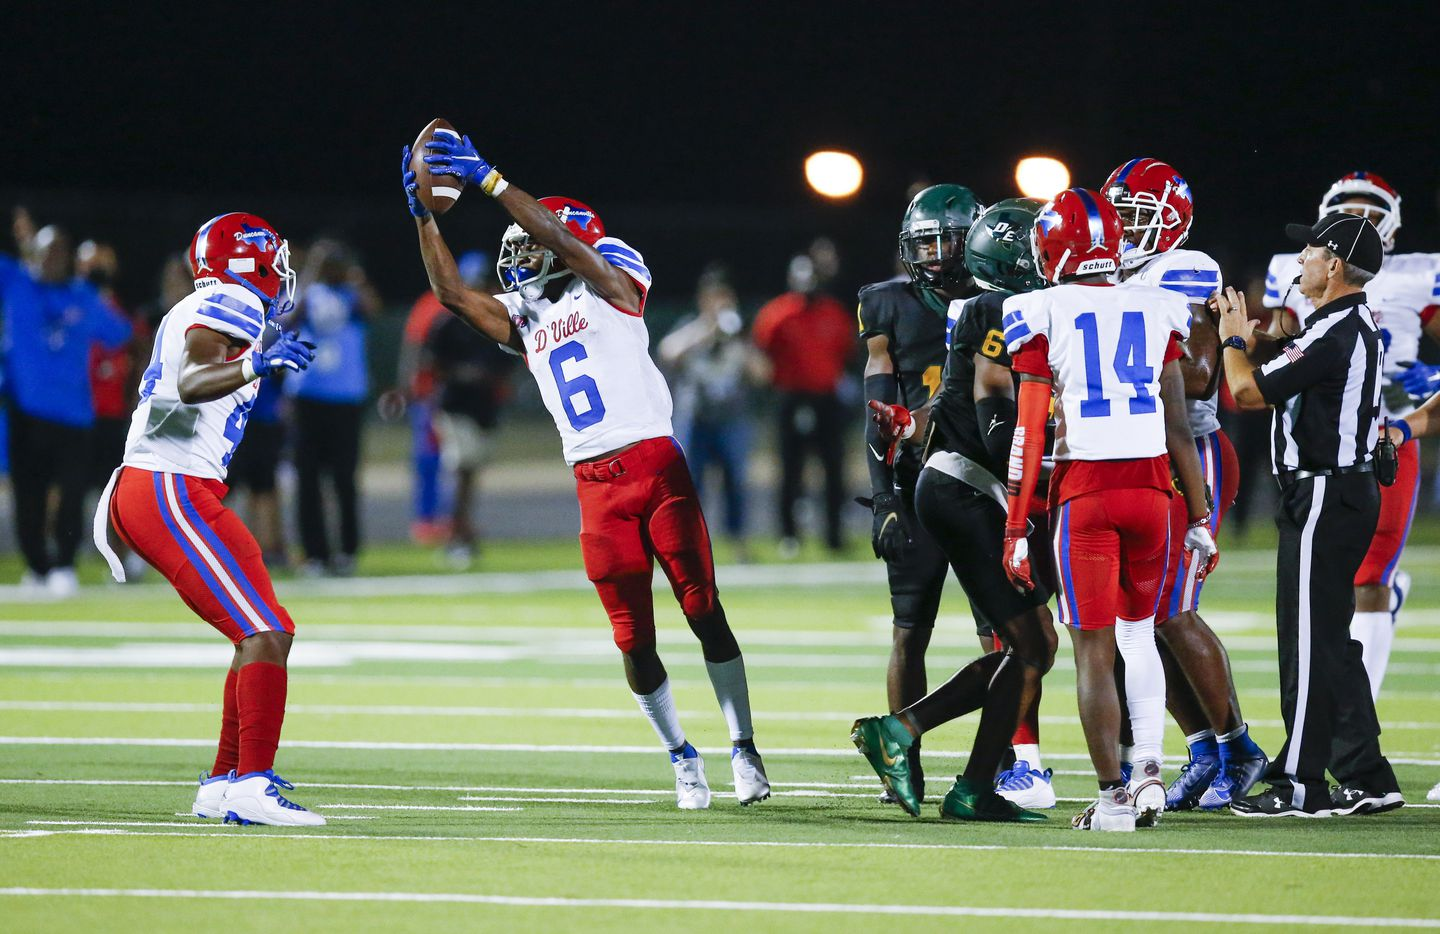 Duncanville senior Da'Myrion Colemman (6)(CQ) celebrates coming up with a DeSoto fumble on a punt return during the second half of a high school football game at DeSoto High School, Friday, September 17, 2021. Duncanville won 42-21. (Brandon Wade/Special Contributor)